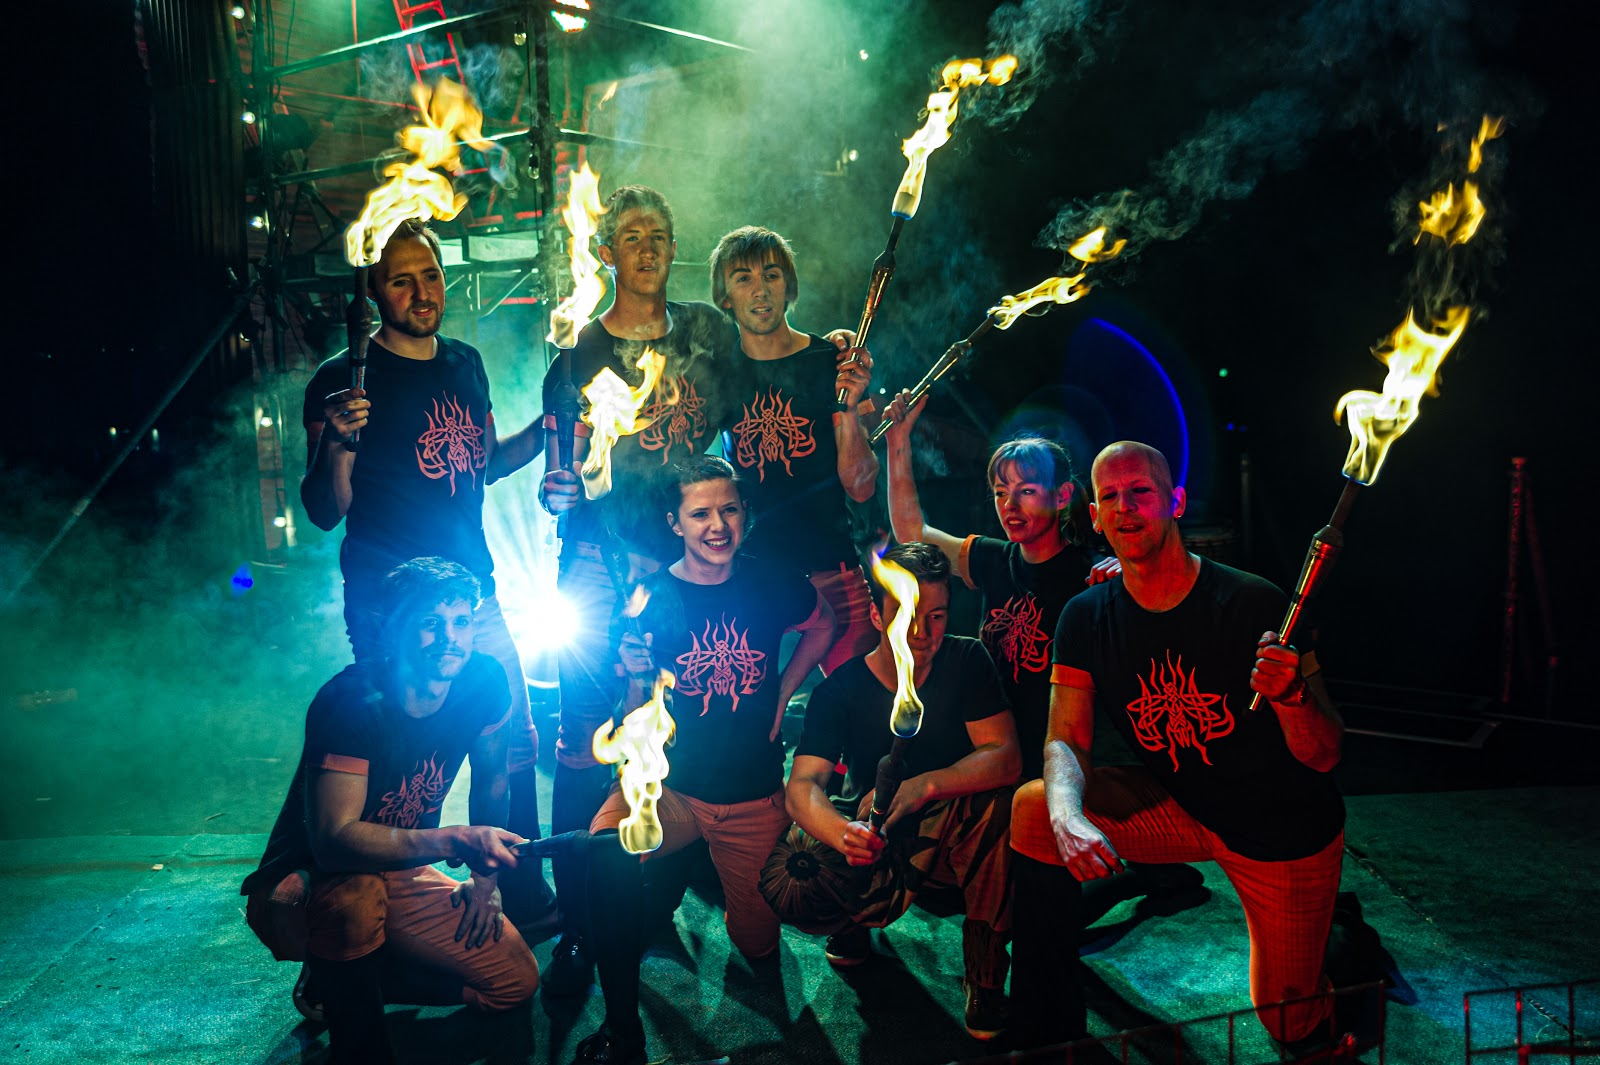 A group of 8 fire spinners poses on a dark stage with their fire implements.